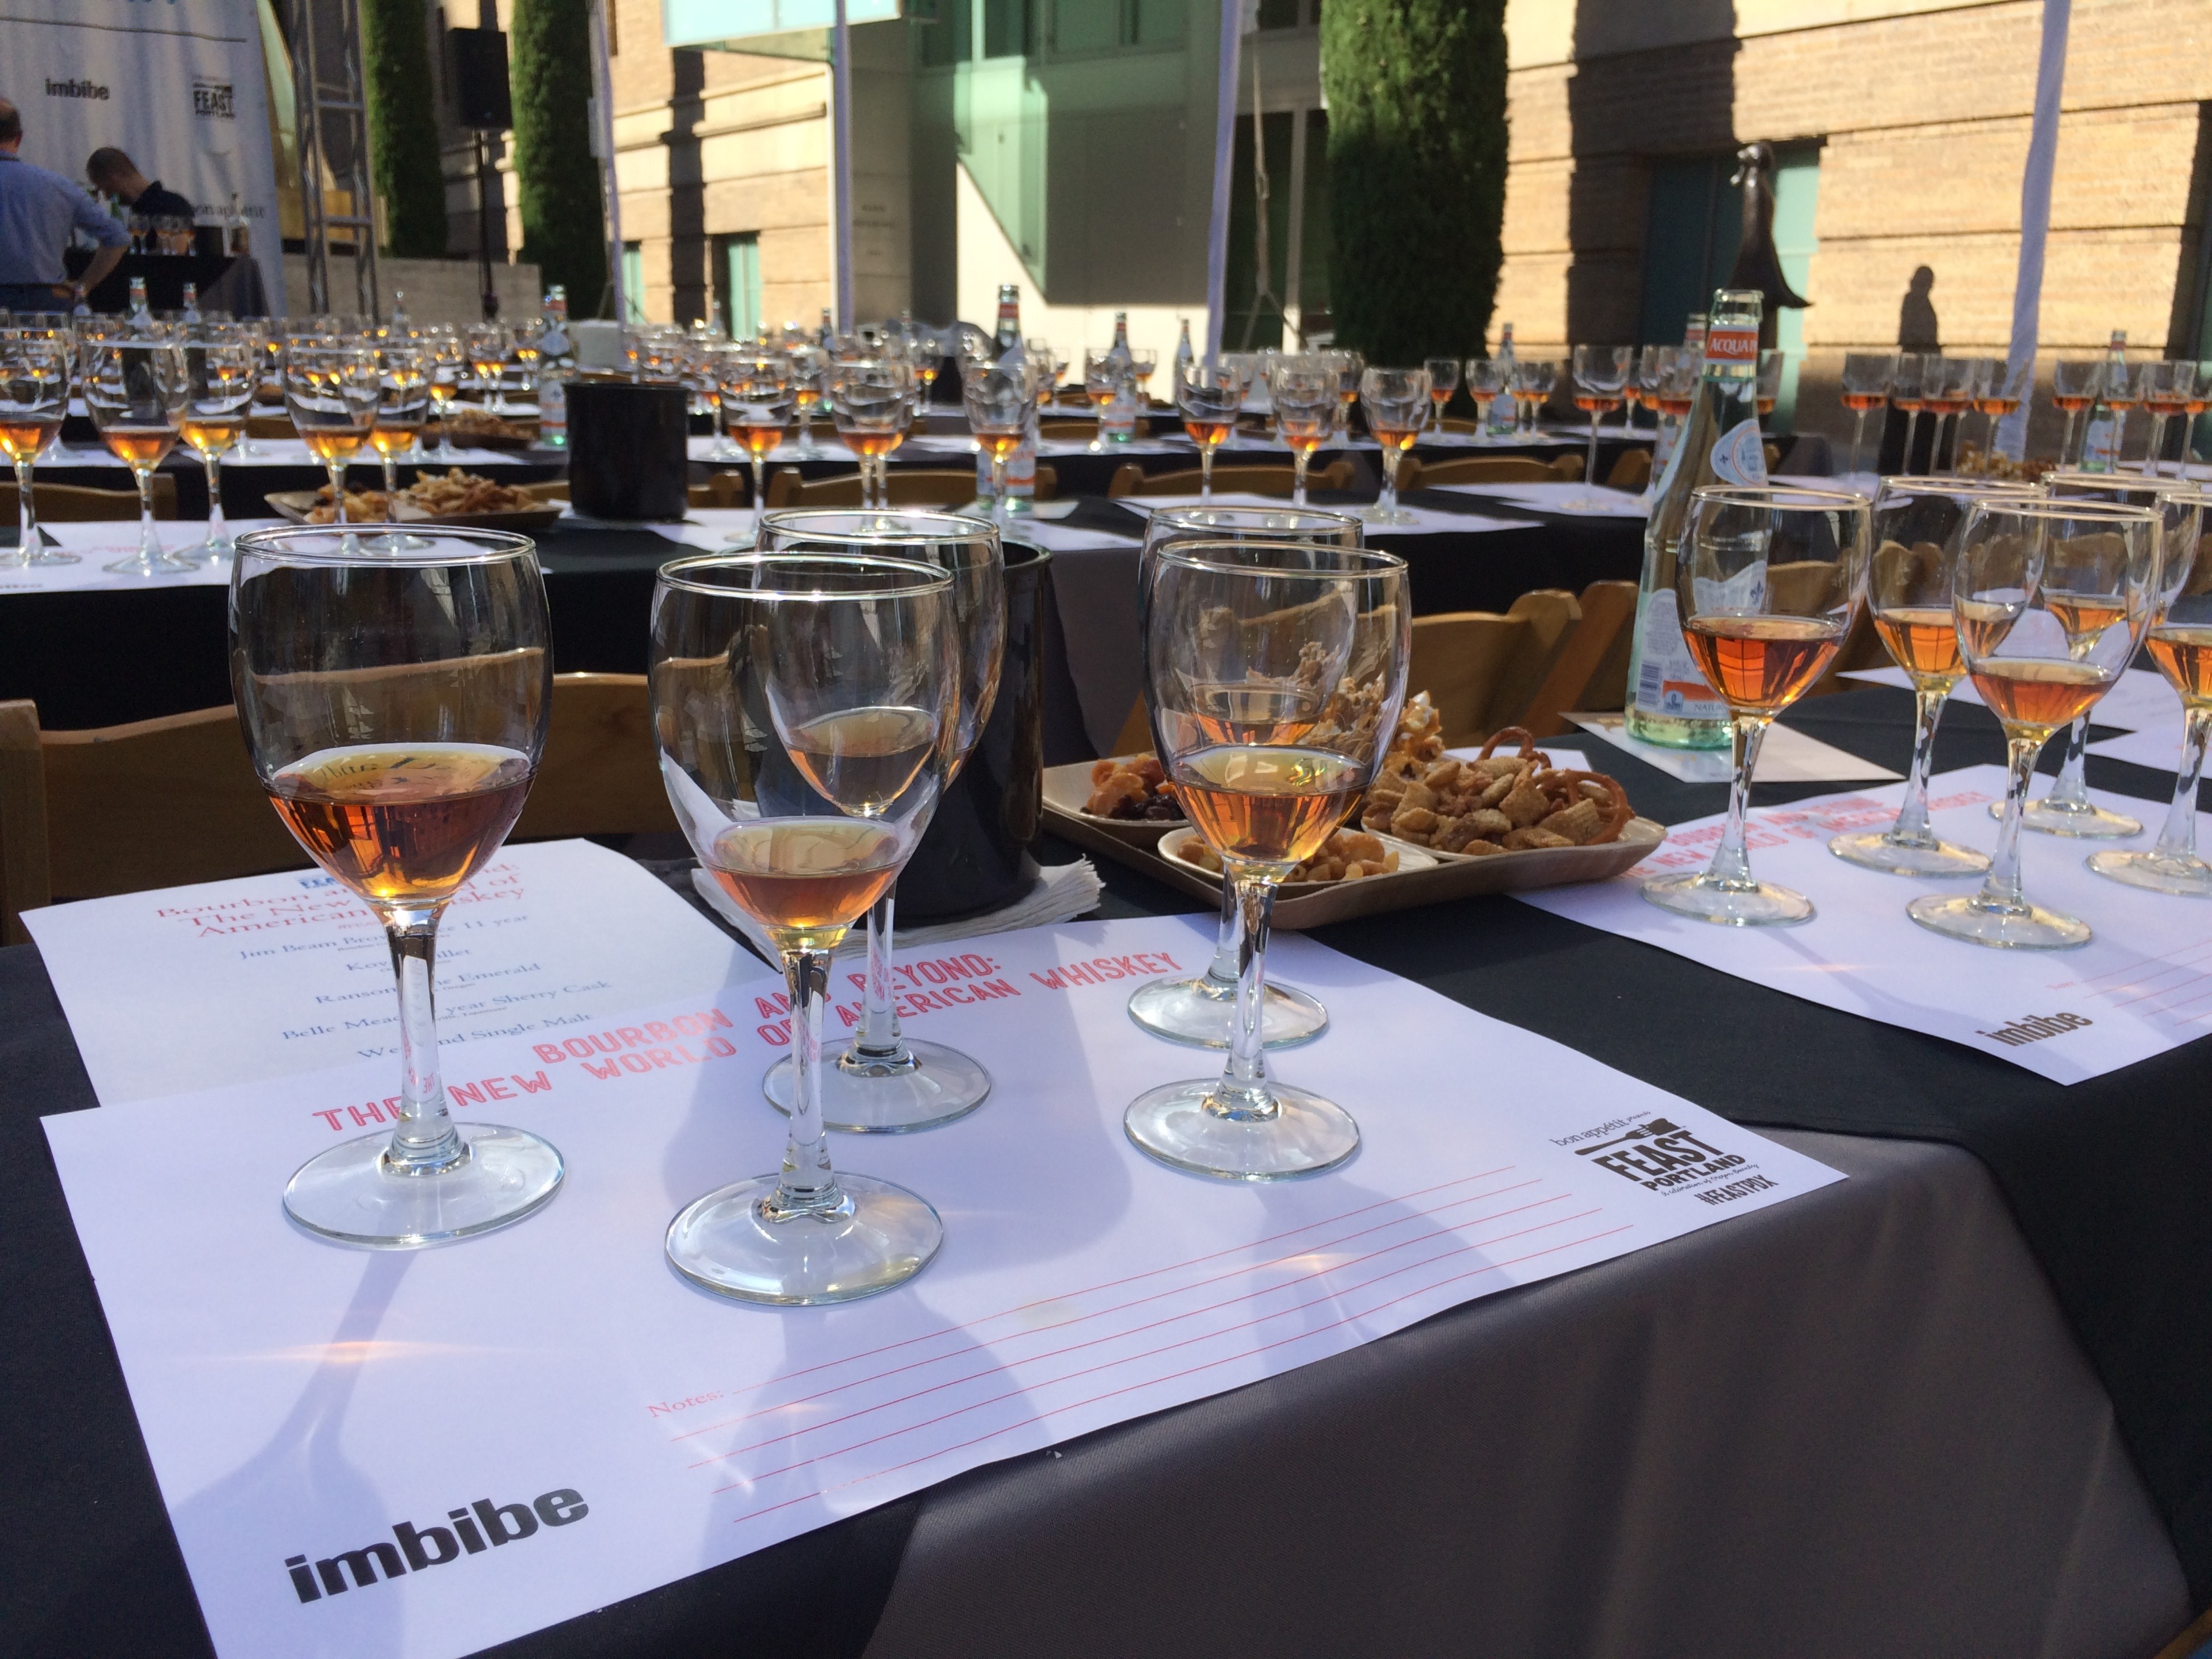 Tasting flight during Bourbon & Beyond - The New World of American Whiskey at Feast Portland in 2015. (photo by D.J. Paul)